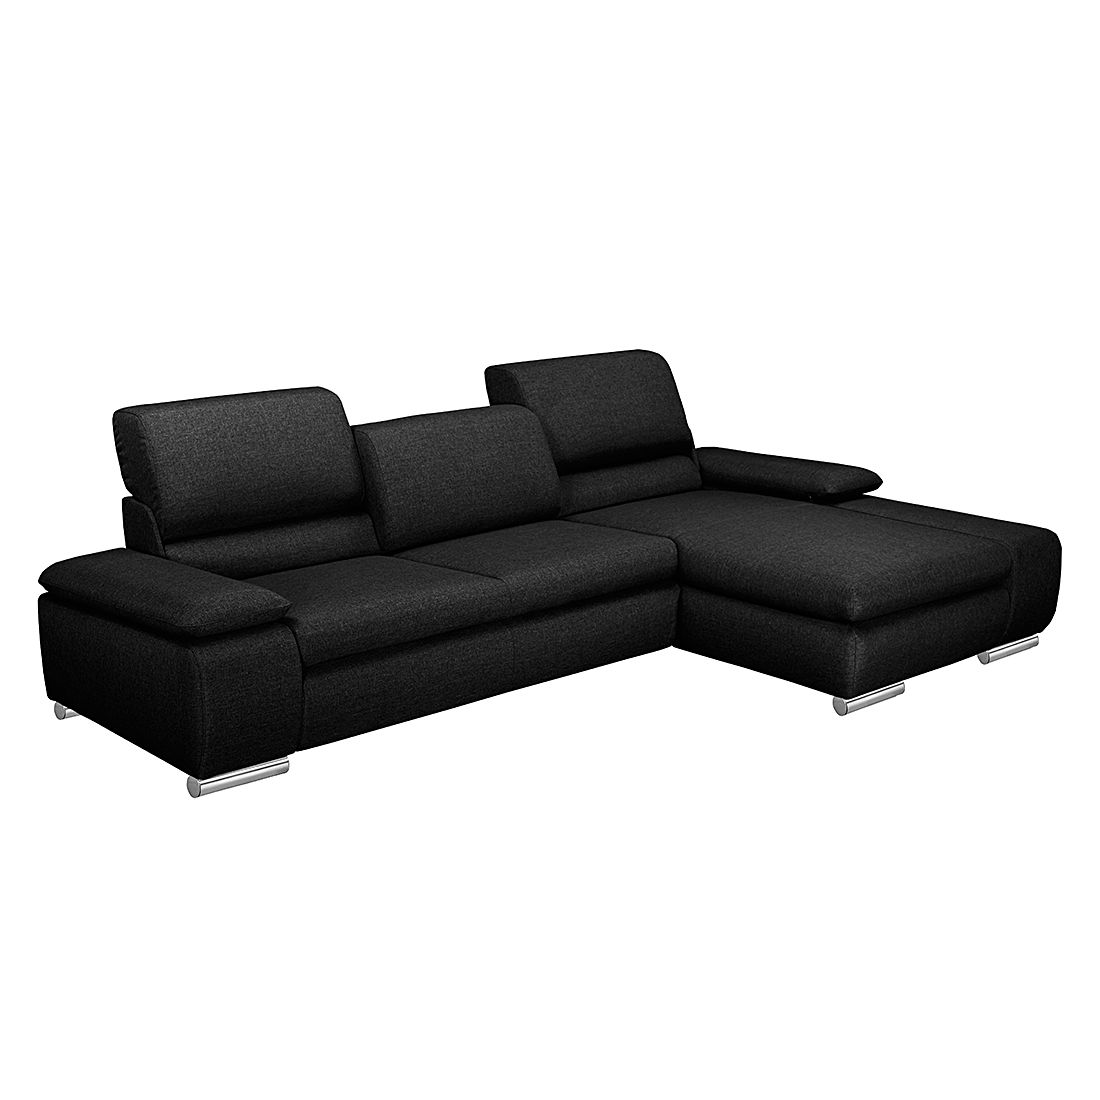 ecksofa masca webstoff schwarz longchair davorstehend rechts ohne schlaffunktion. Black Bedroom Furniture Sets. Home Design Ideas